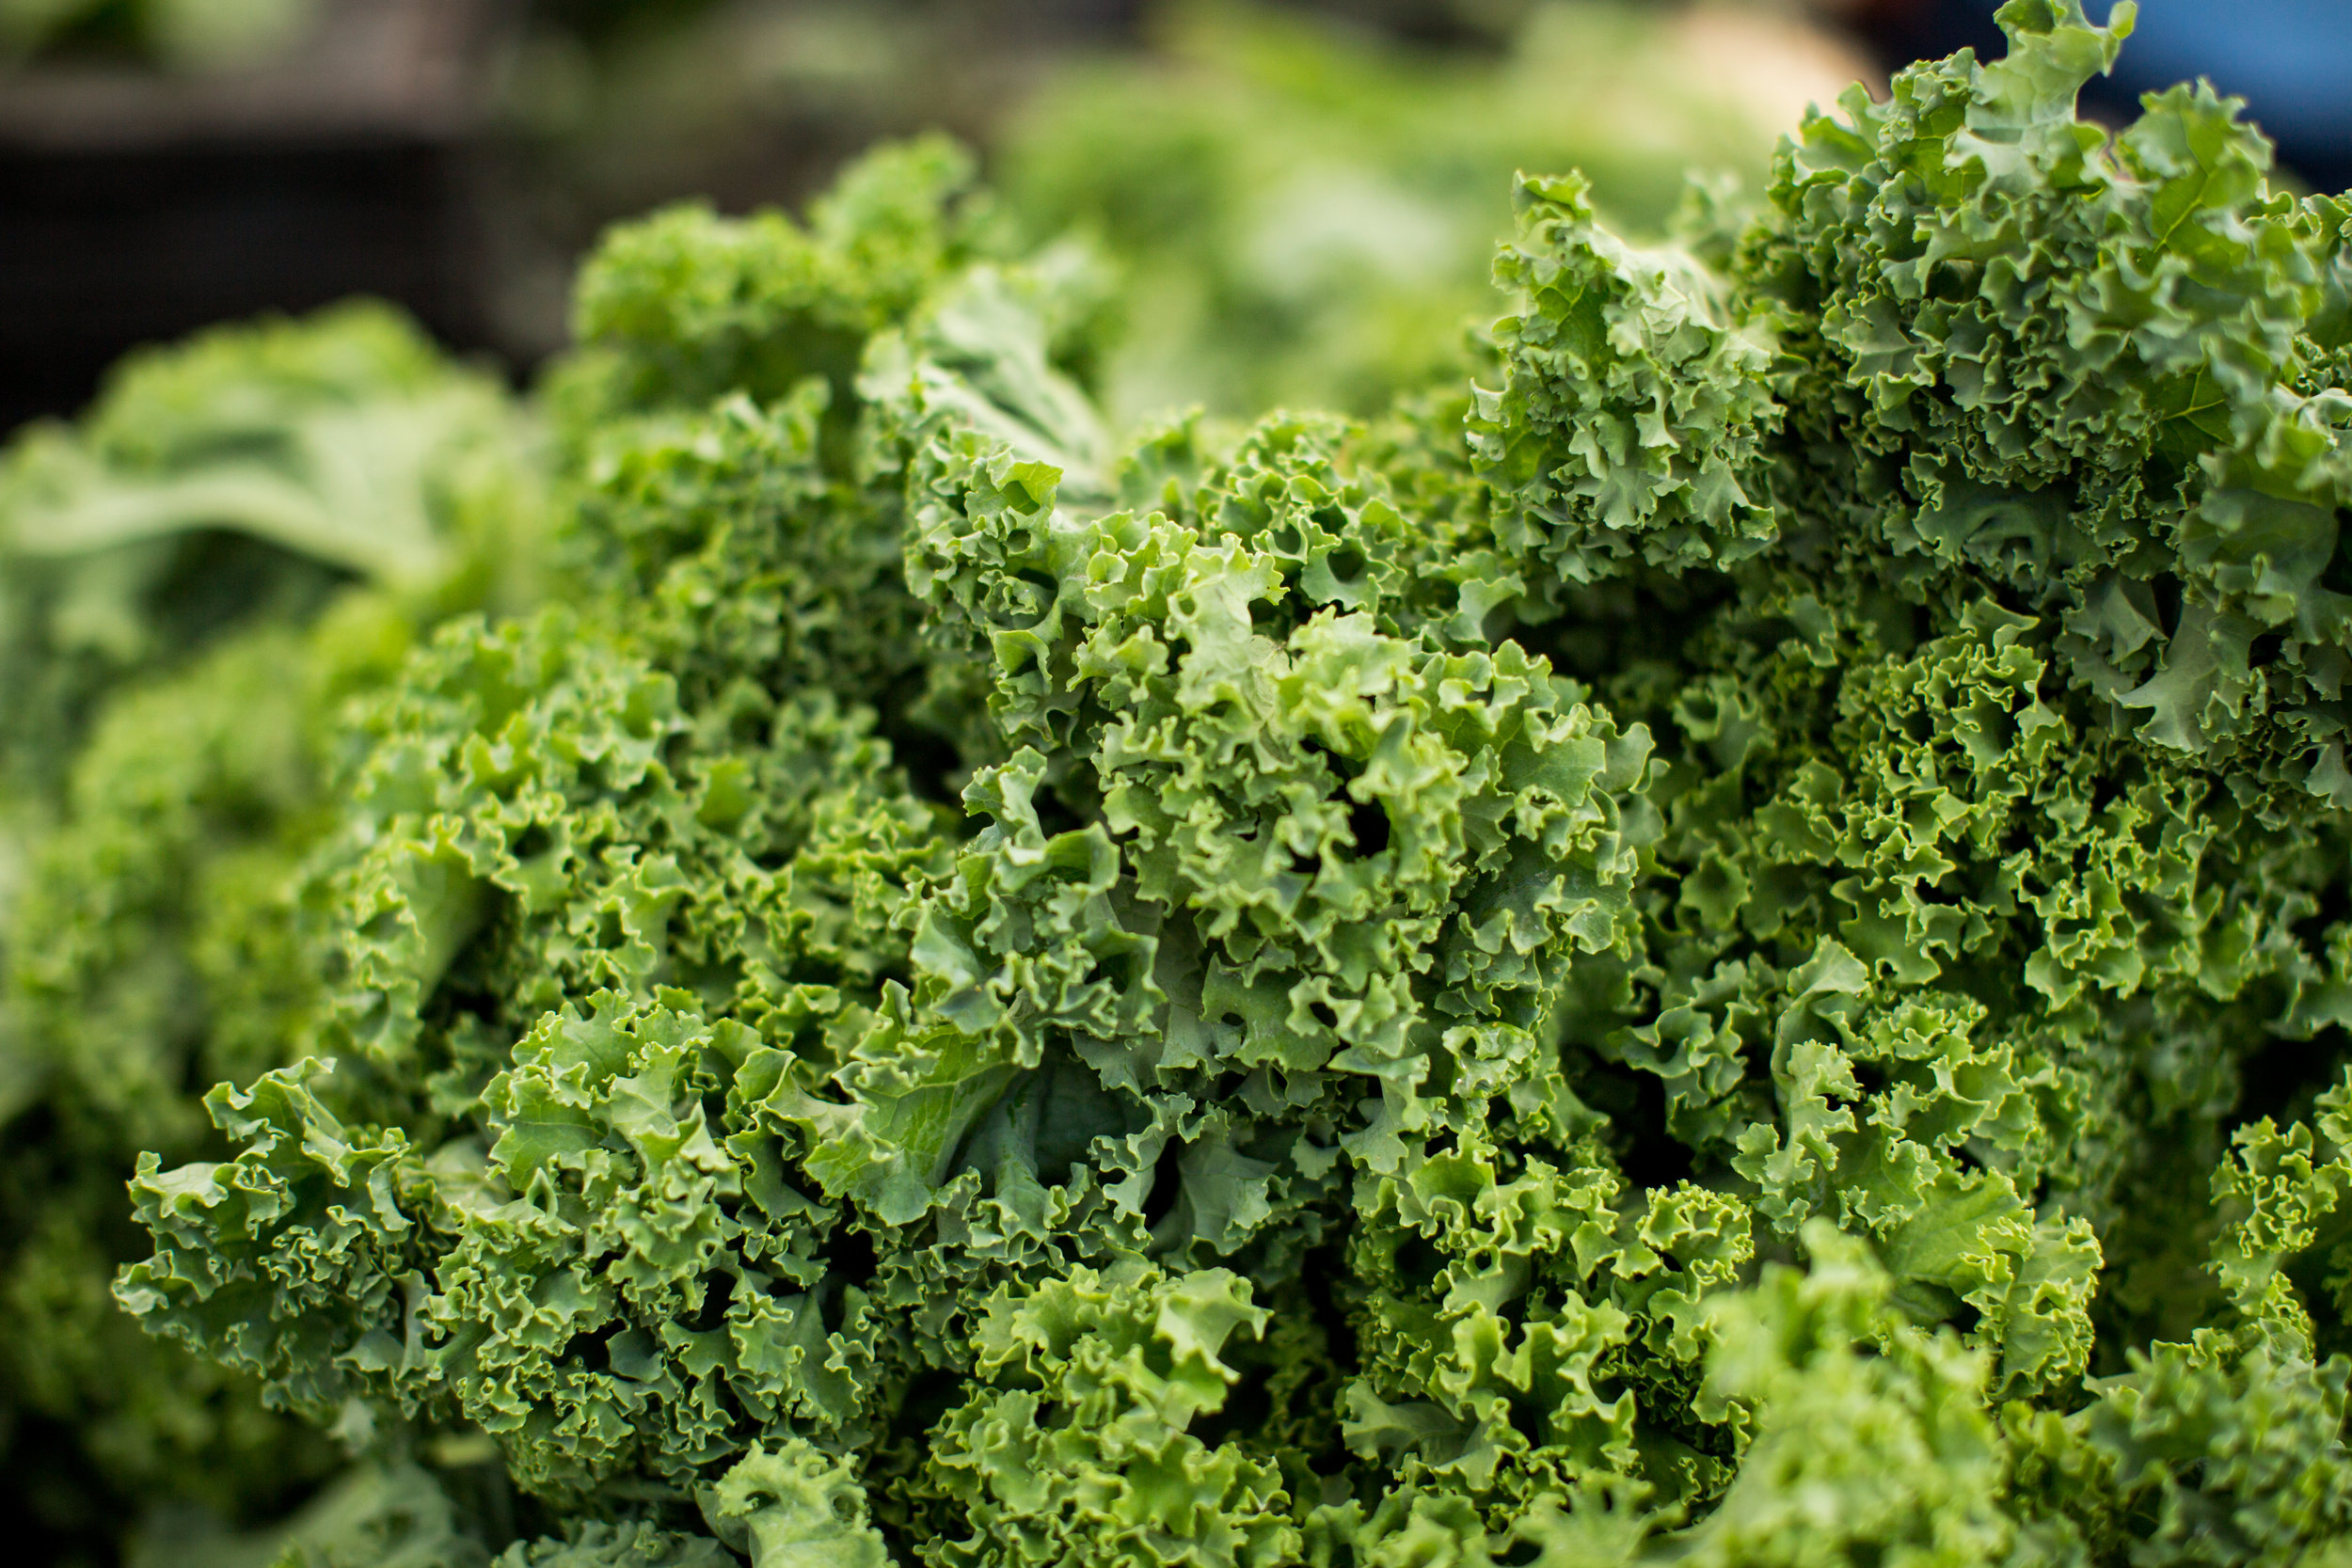 Kale - Kale is one of the most nutrient-dense foods that you can eat. It is especially rich in Vitamin A, Vitamin C, and Vitamin K. Kale is one of the best ways to get Vitamin K. One cup of rare kale containing almost 7 times the recommended daily amount. Kale also contains minerals that most people don't get enough of in their diet, including Calcium, Potassium, and Magnesium.